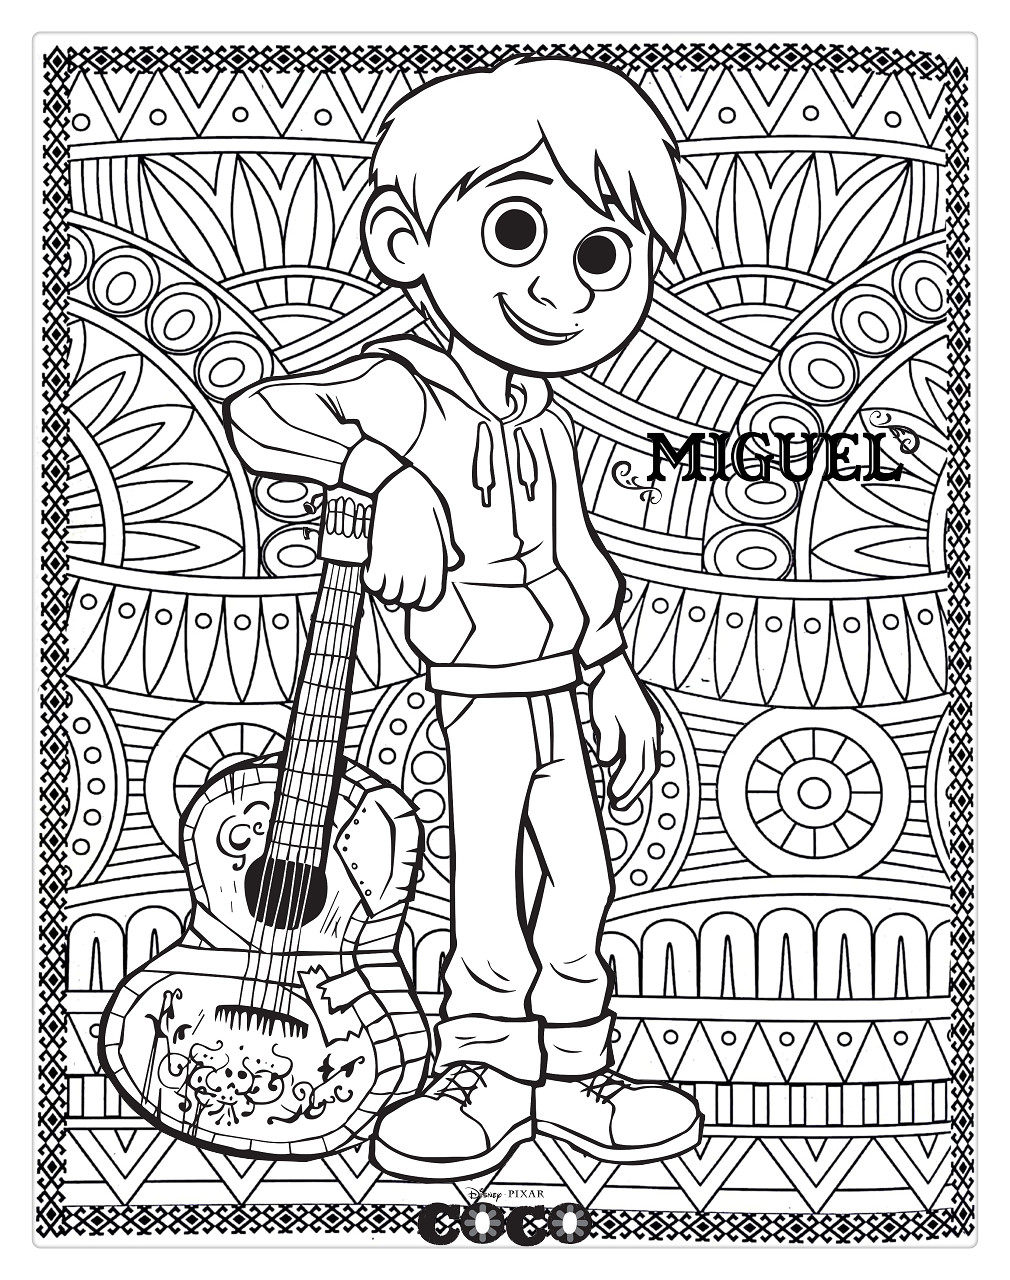 Free Disney Coco Coloring Pages Miguel for Adults printable